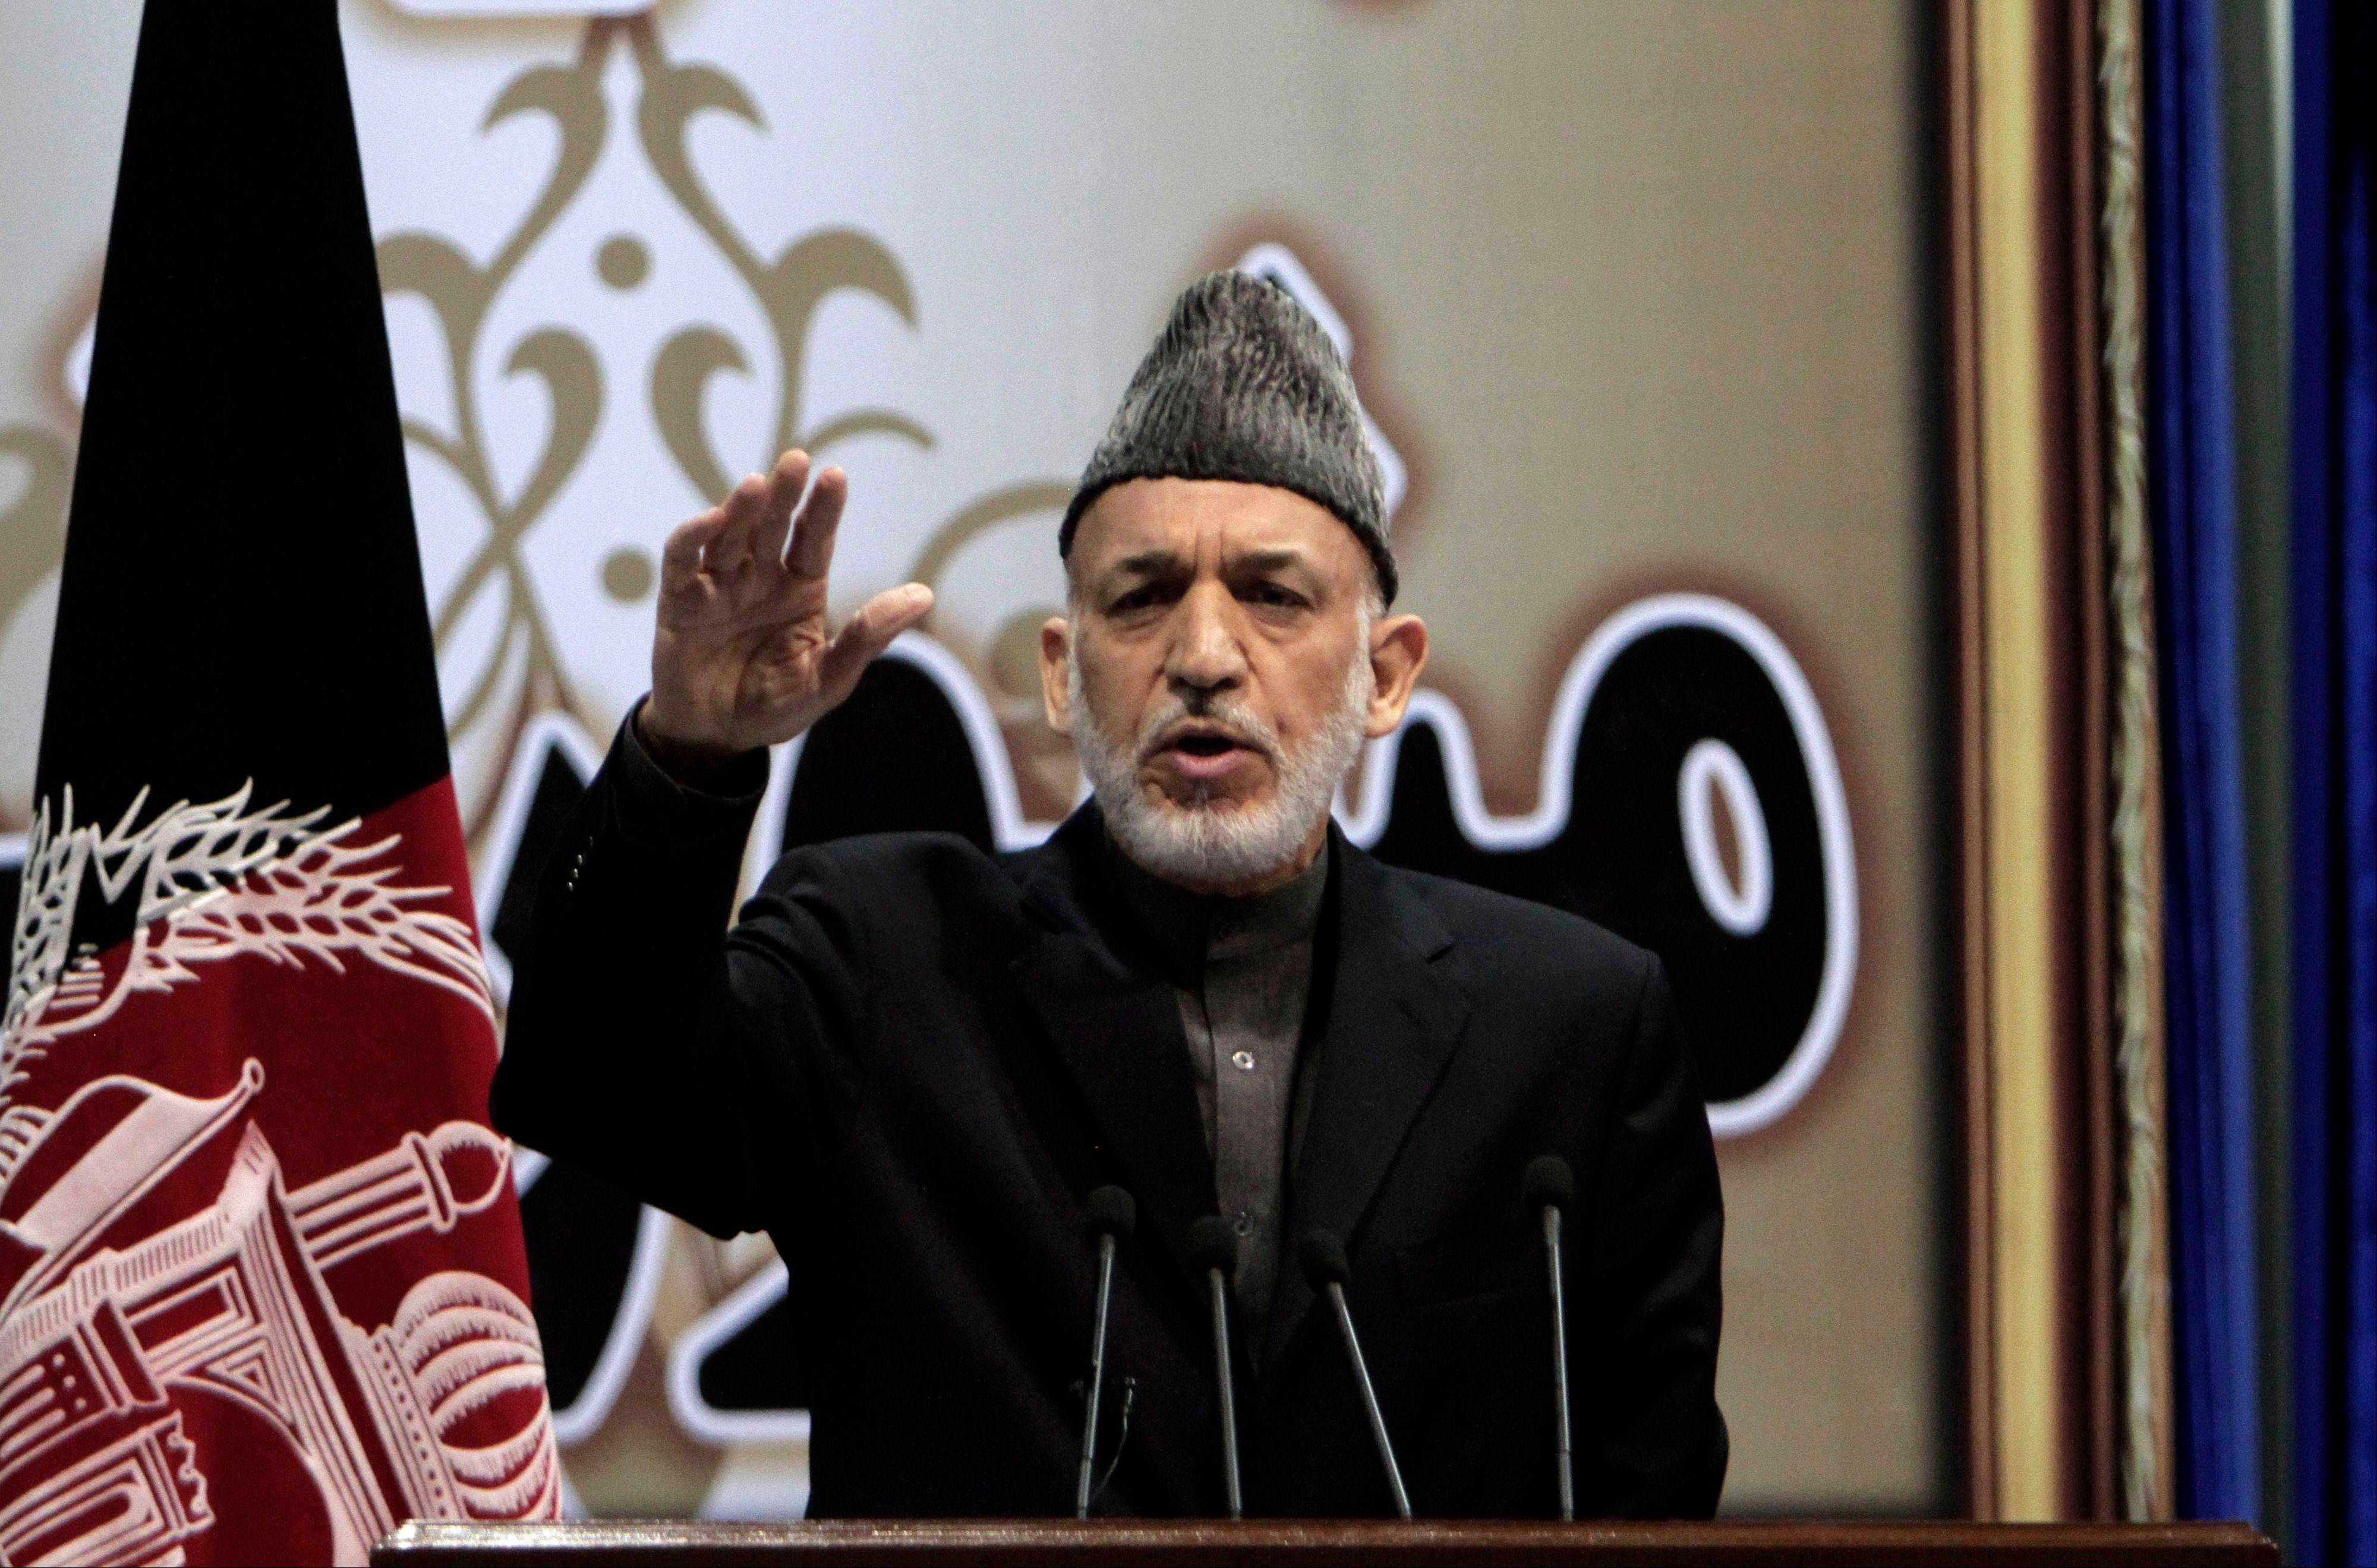 Afghan President Hamid Karzai on Sunday said he won't immediately sign a security deal with the United States, ignoring a recommendation by an assembly of Afghan elders and leaders he do so by the end of the year. He argued Afghanistan needed more time to ensure the U.S. was committed to peace.